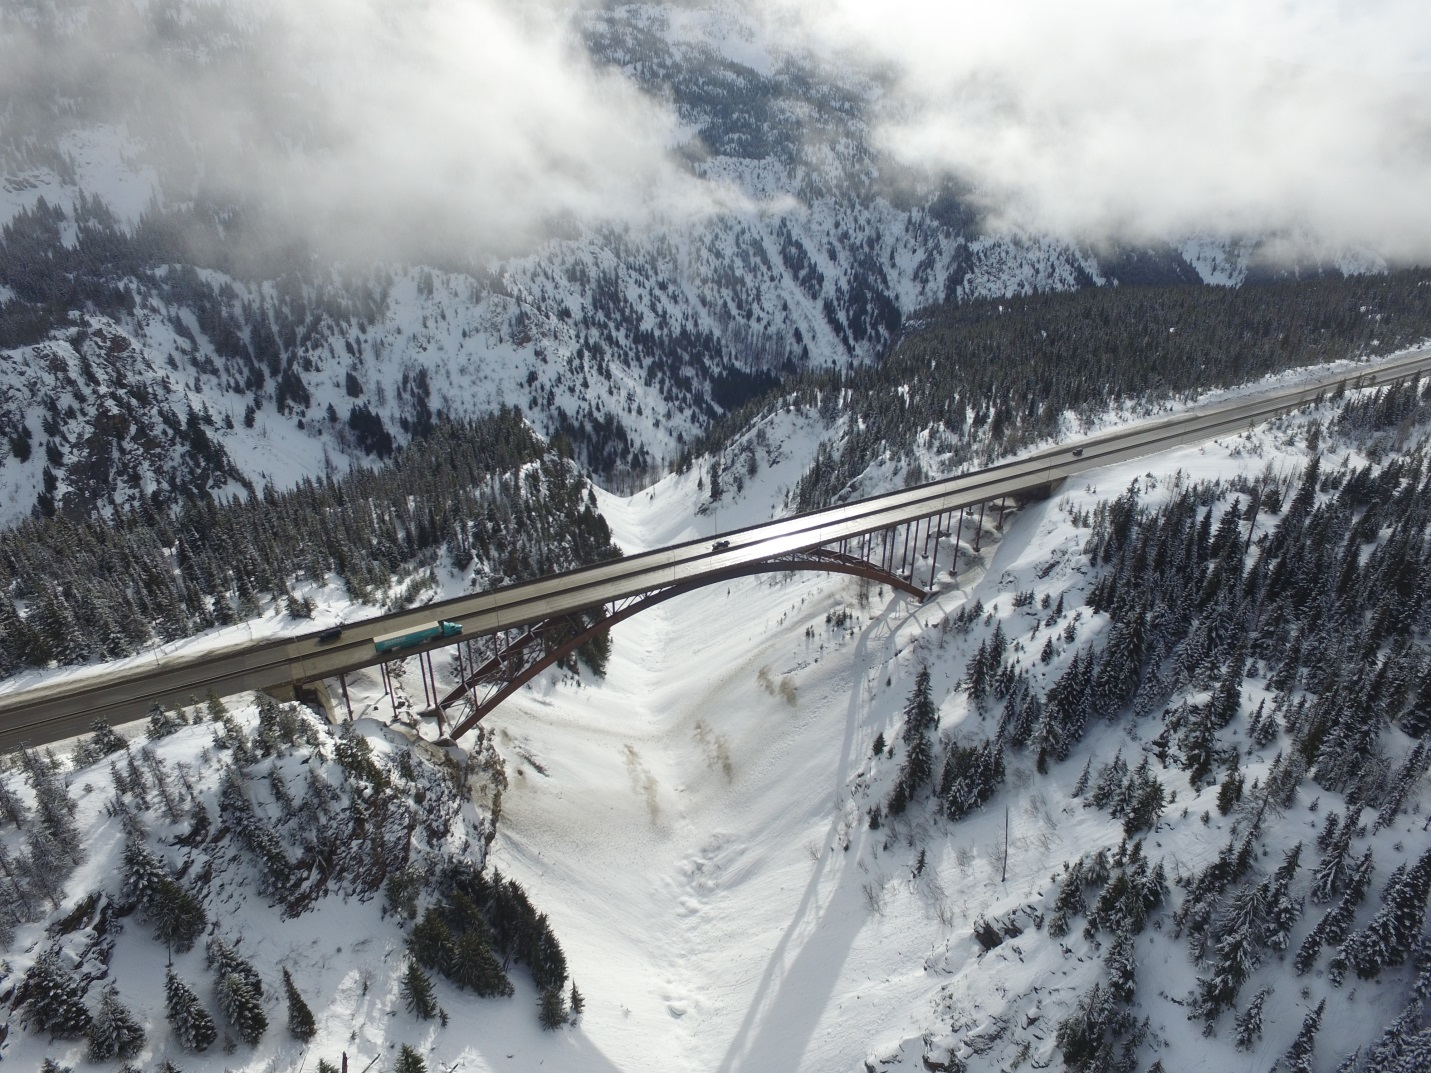 Merritt mayor hopeful that the province is looking at further safety measures on the Coquihalla